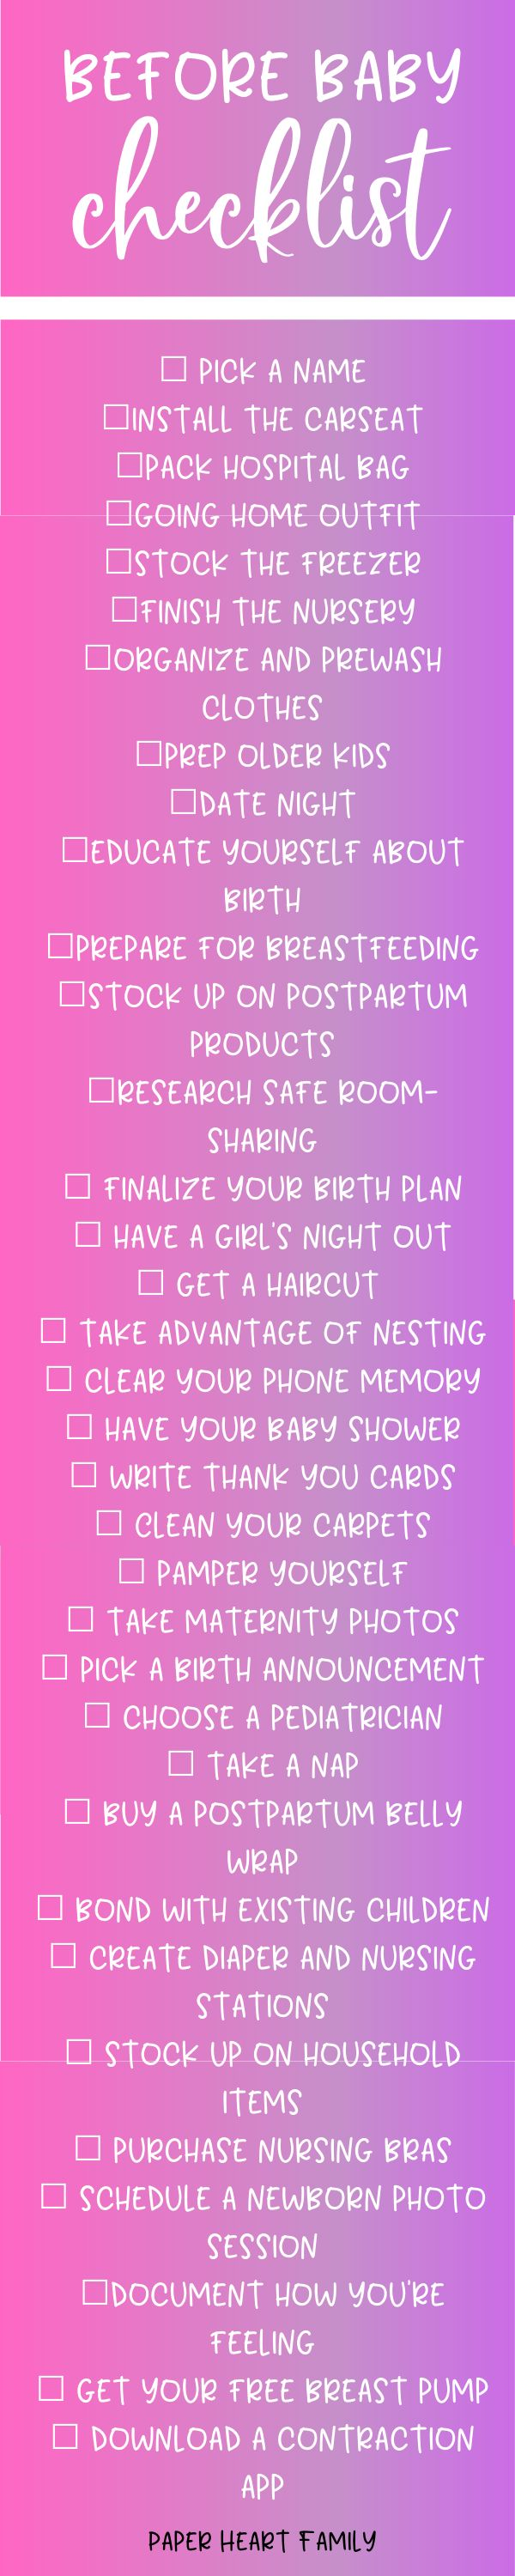 Things To Do Before Baby Arrives- Checklist Printable Included!